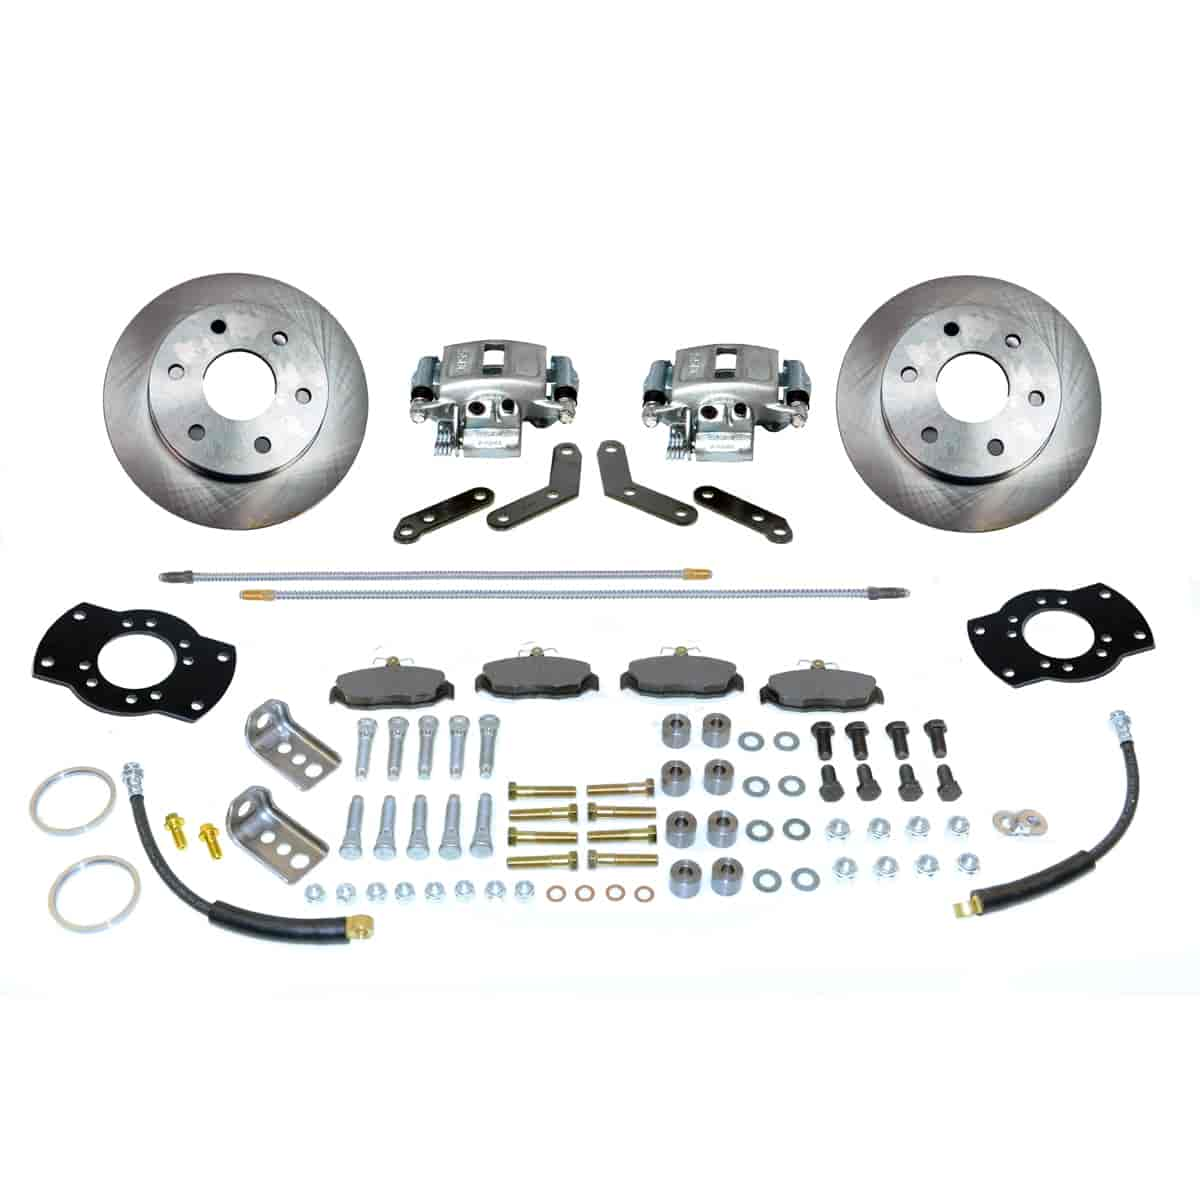 SSBC A126 - Stainless Steel Brakes Single Piston Rear Drum to Disc Brake Conversion Kits